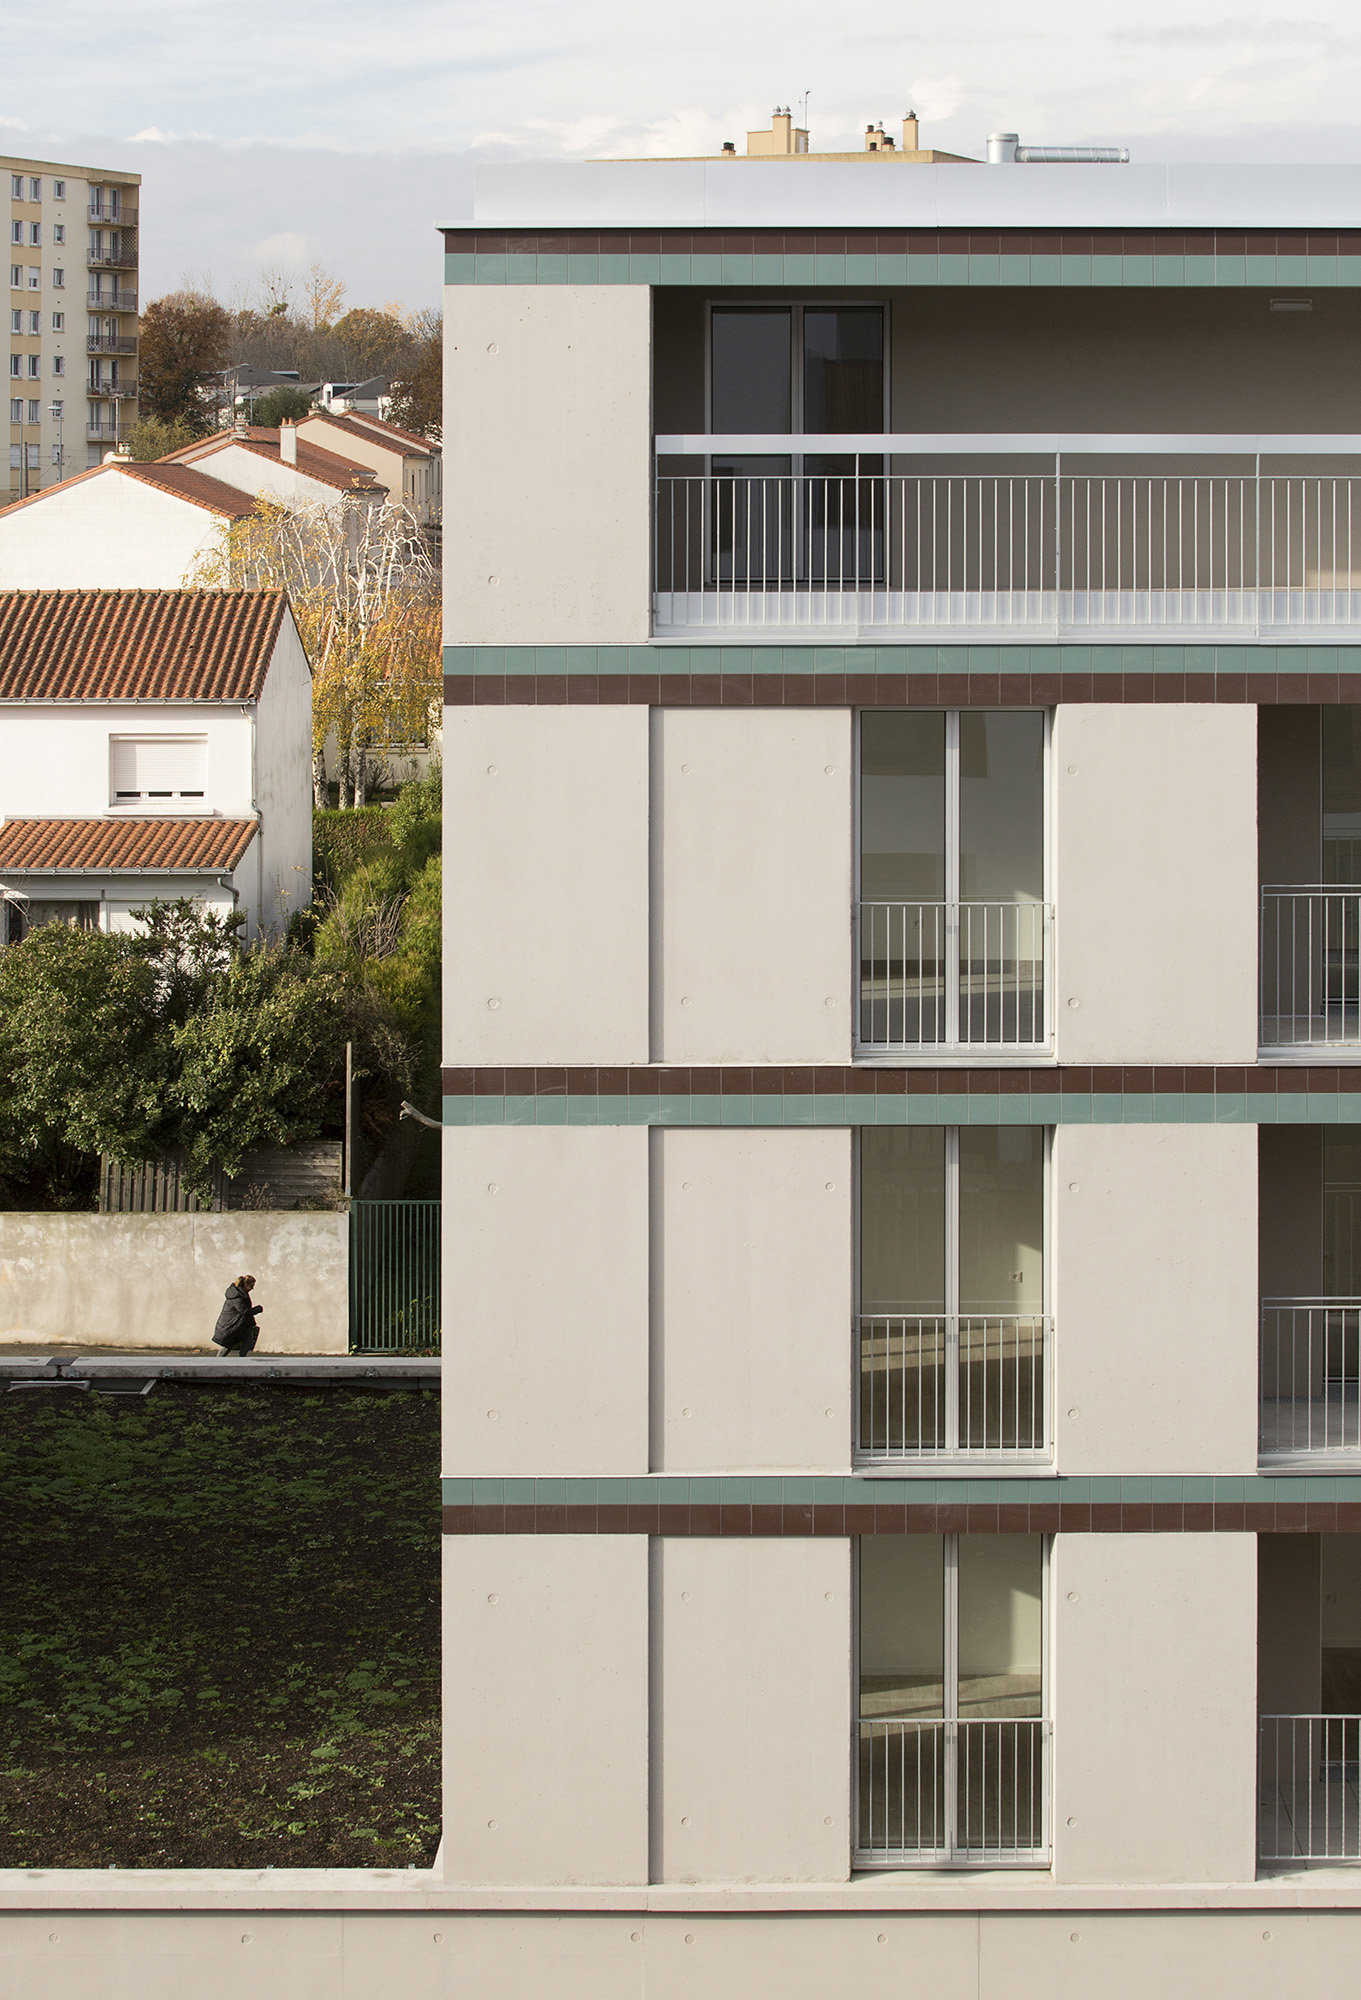 COLLECTIVE HOUSING UNITS - DERVALLIERES - 4